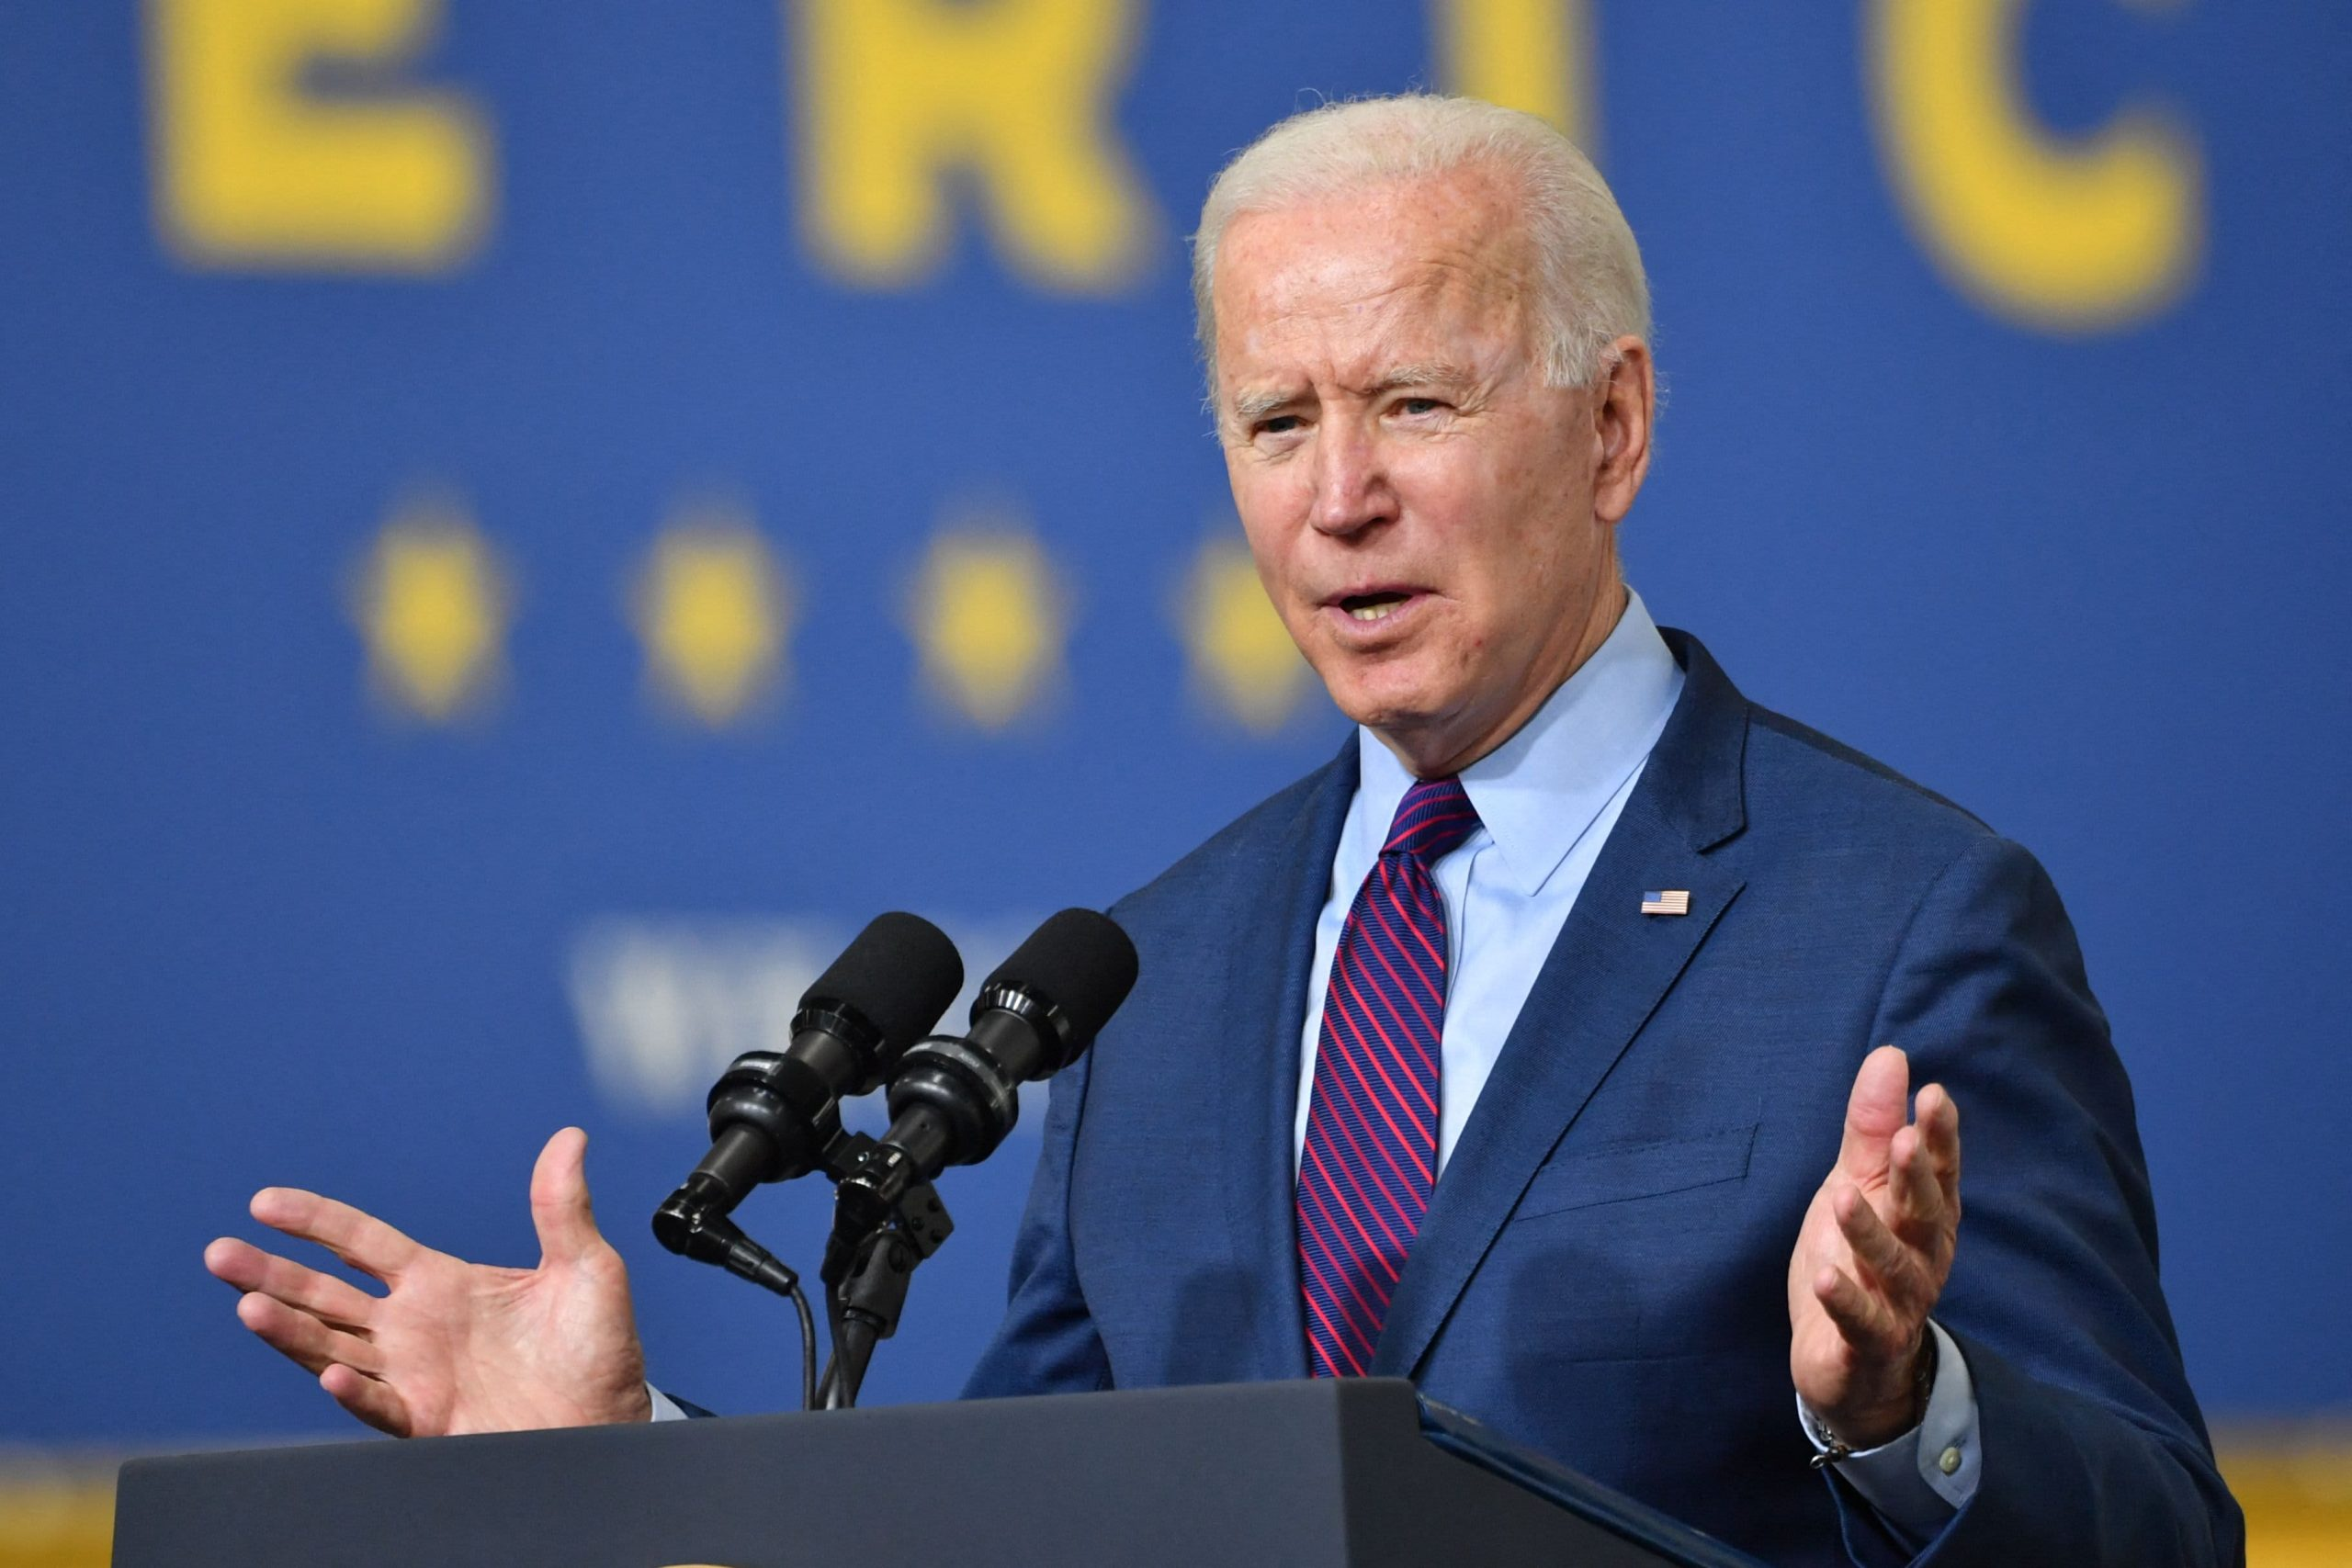 IRS crackdown: Biden administration says it can raise $700 billion by targeting tax cheats